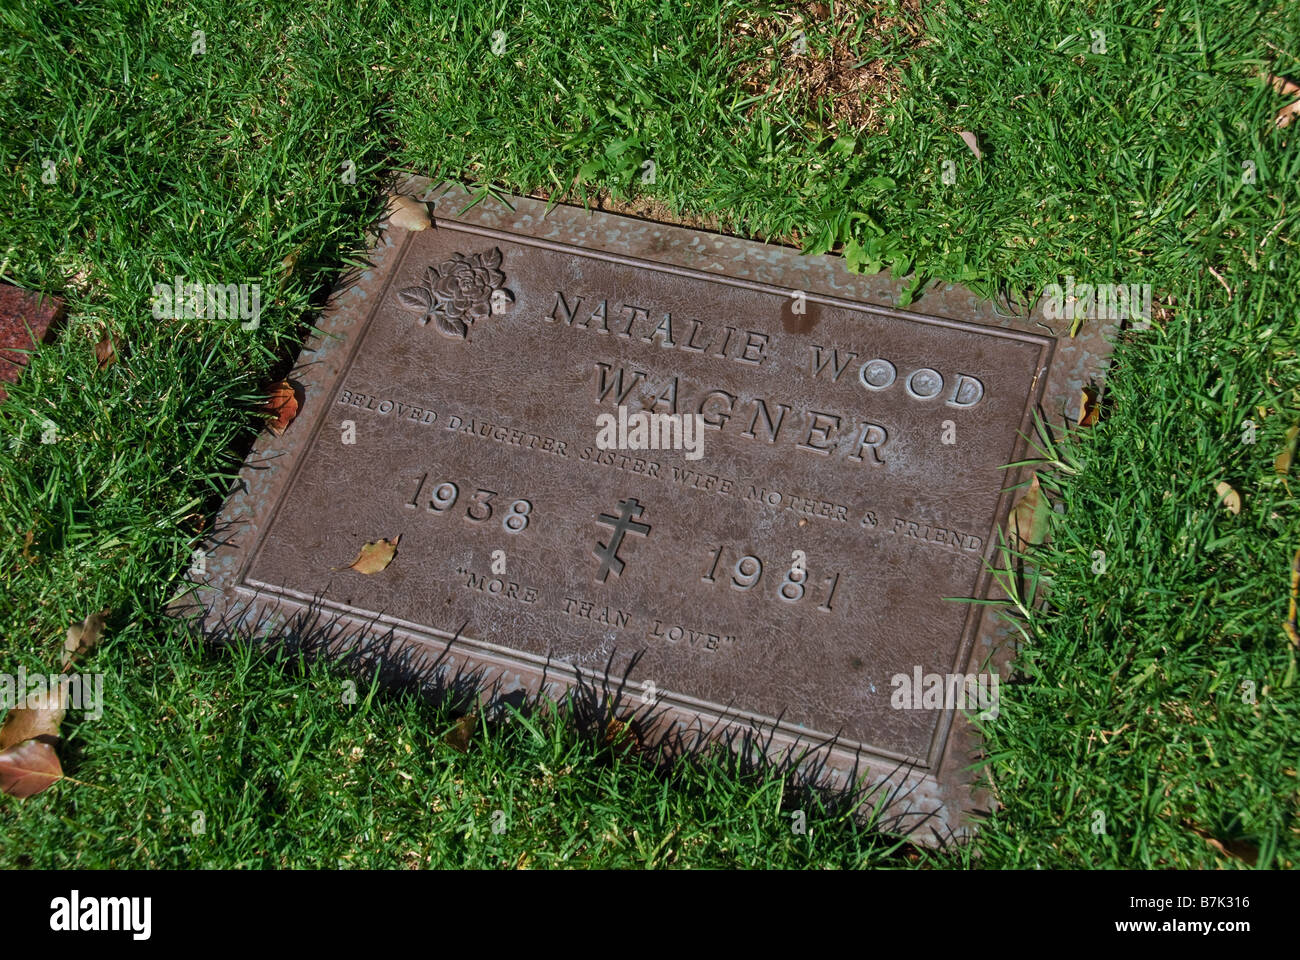 Natalie Wood Actress Hollywood Celebrity Graves Westwood Memorial Park Los Angeles CA cemetery Mortuary final resting - Stock Image